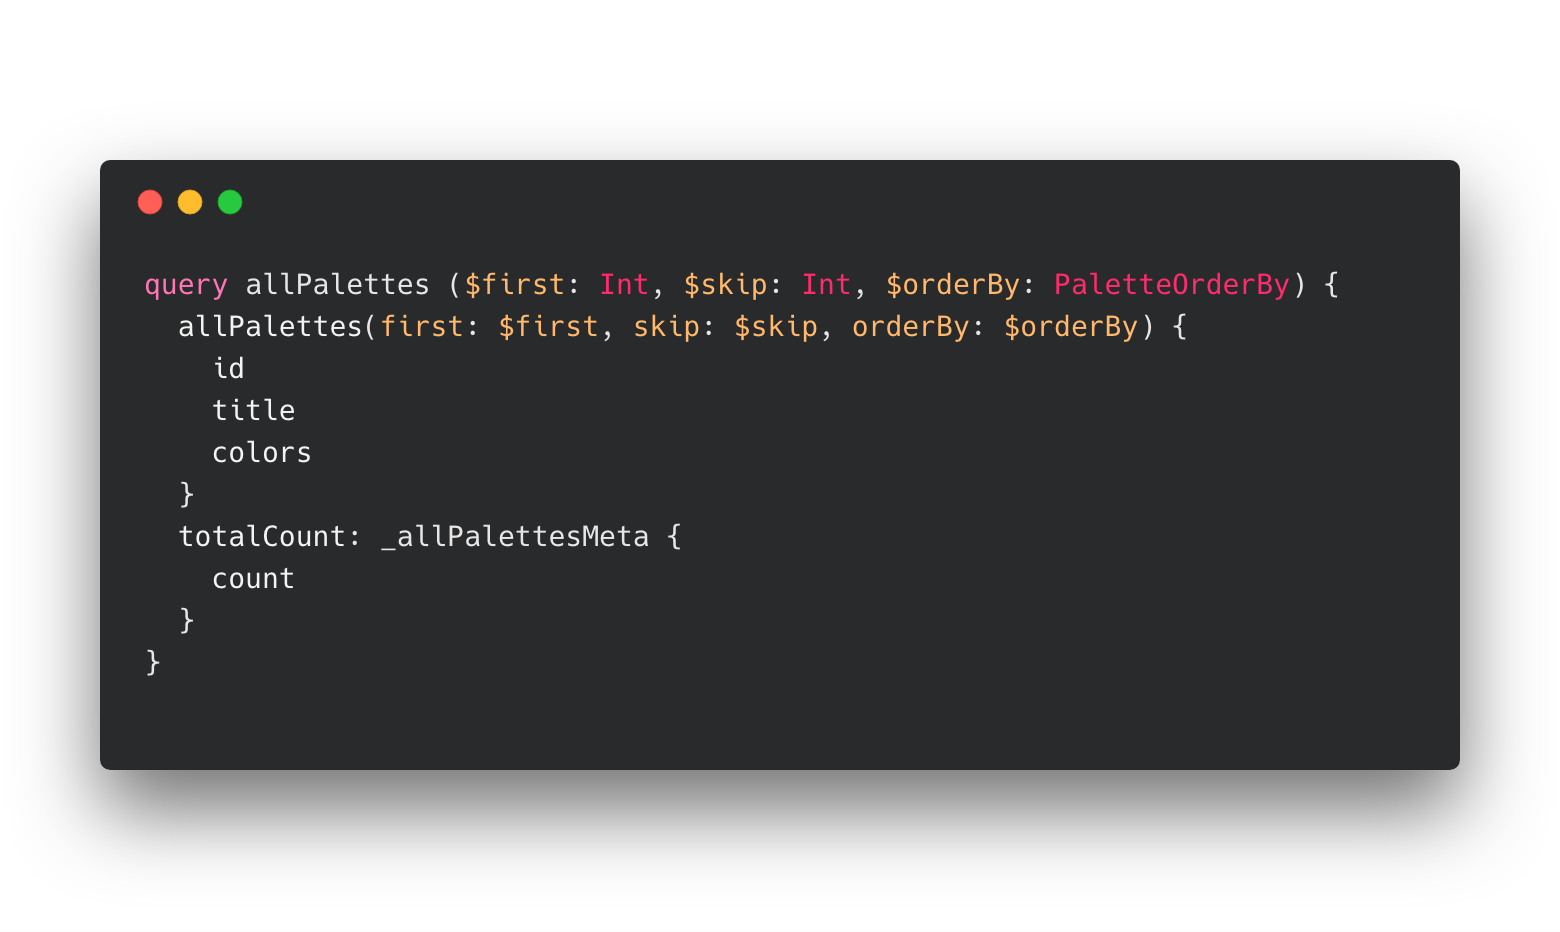 New query with first and skip arguments